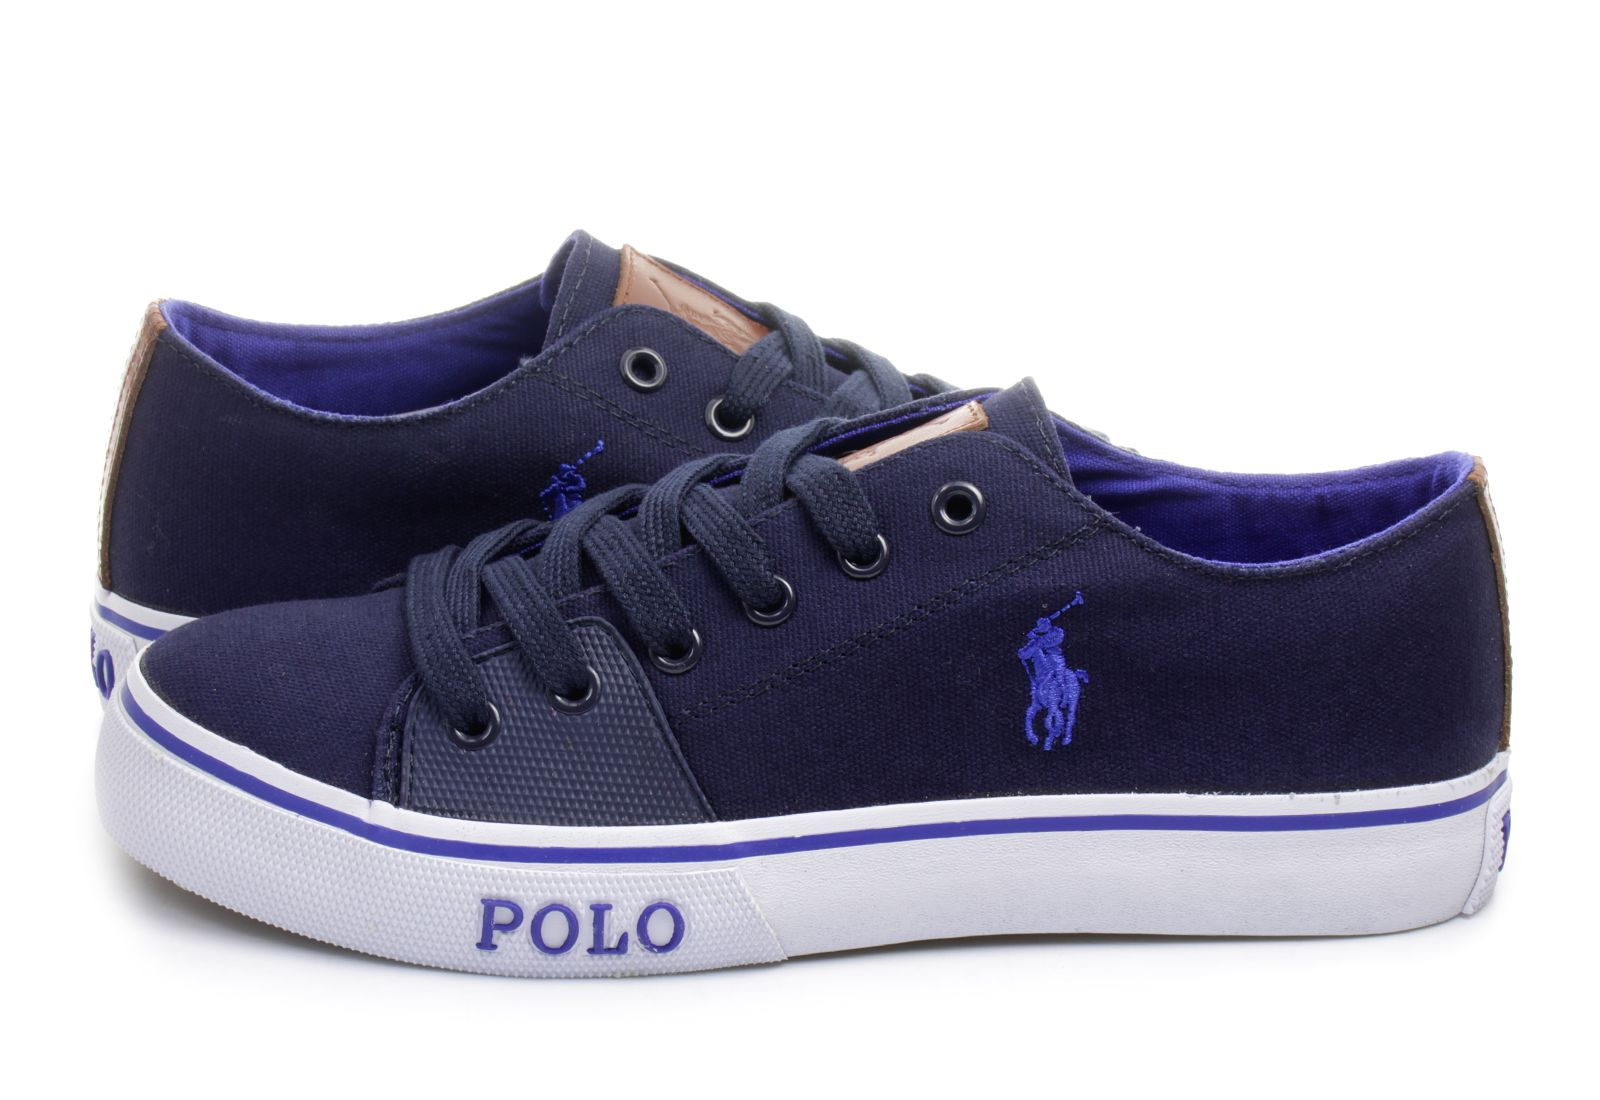 polo ralph lauren shoes cantor low ne 816181906p78 online shop for sneakers shoes and boots. Black Bedroom Furniture Sets. Home Design Ideas